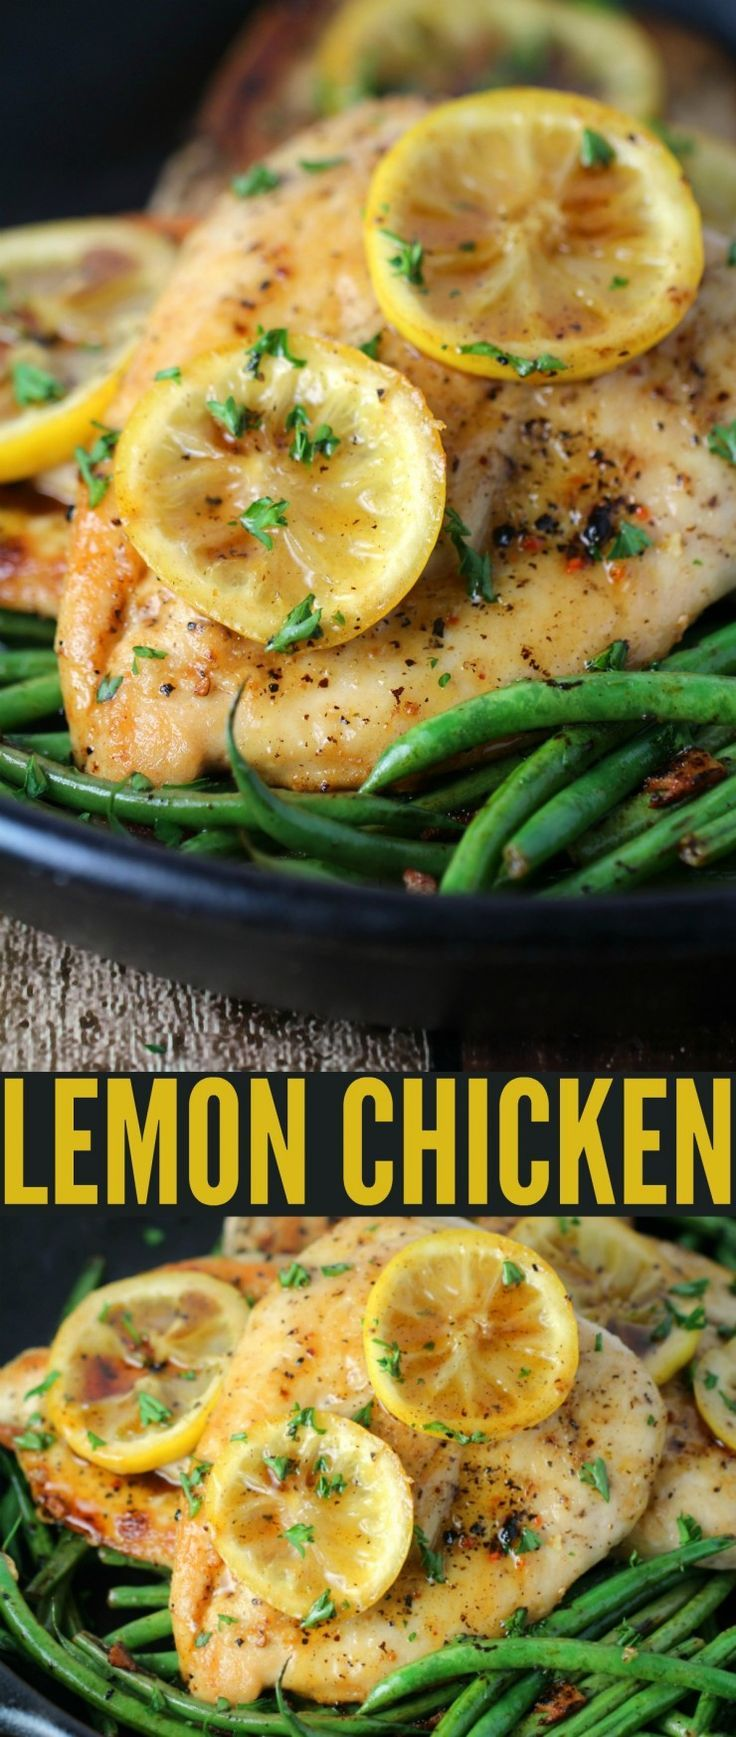 This lemon chicken recipe is a bright, fresh spring dinner recipe that pairs well with fresh vegetables and a side of rice.: